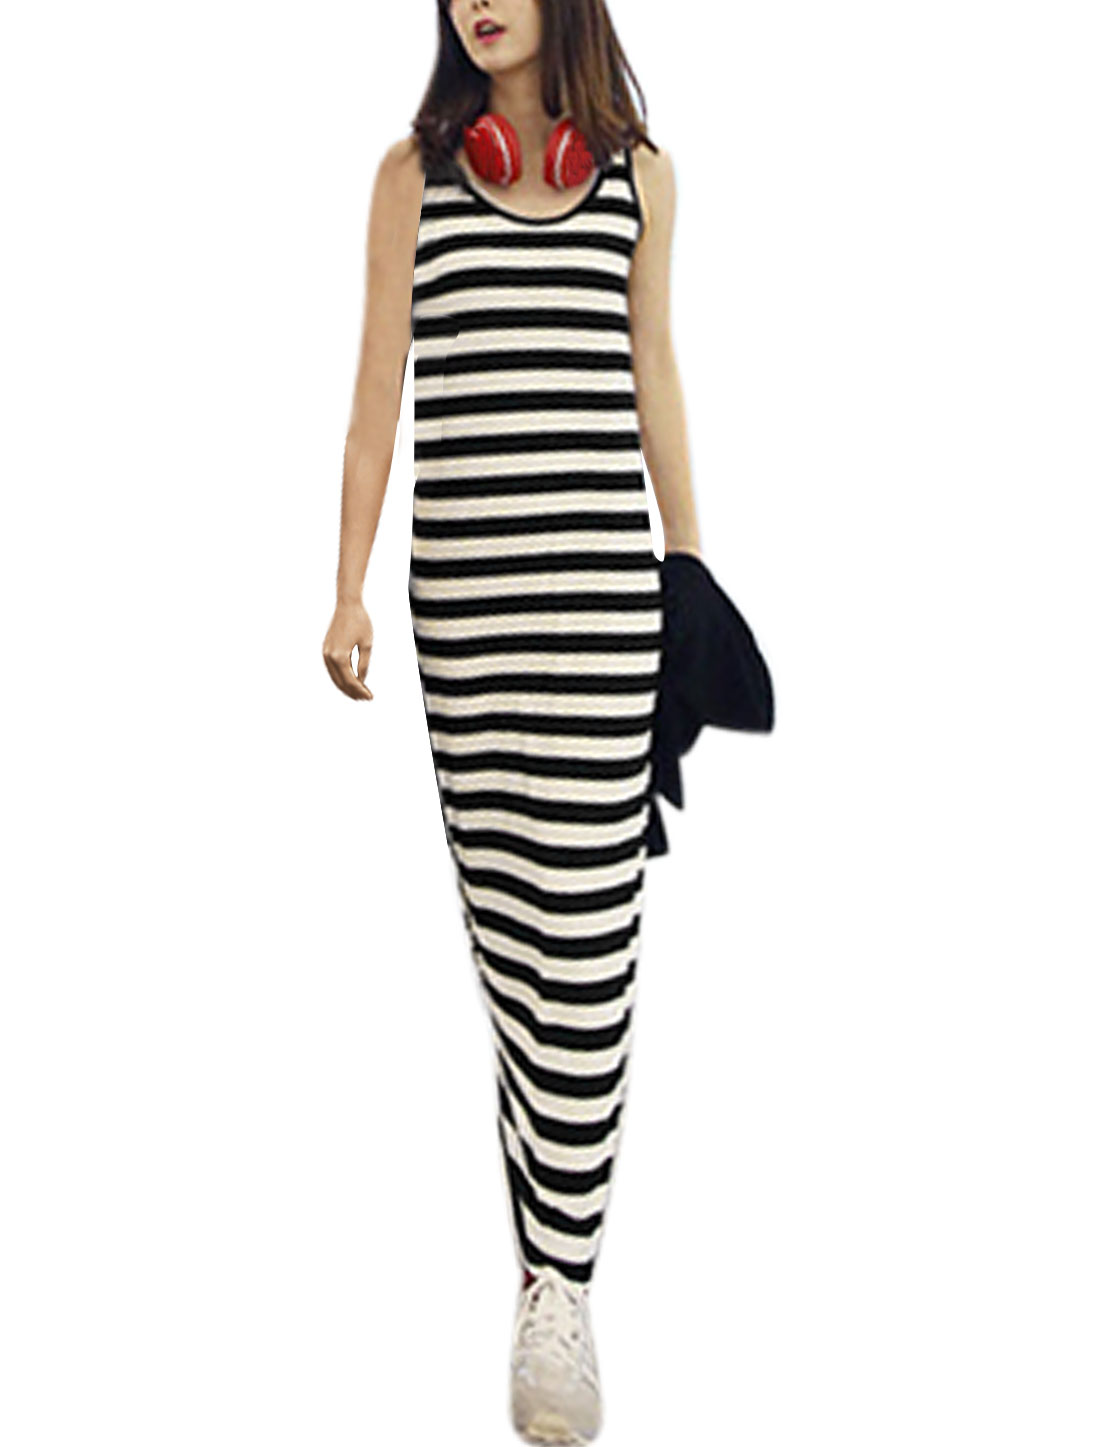 Lady Stripes Pattern Round Neck Pullover Full-Length Straight Dress Black White S